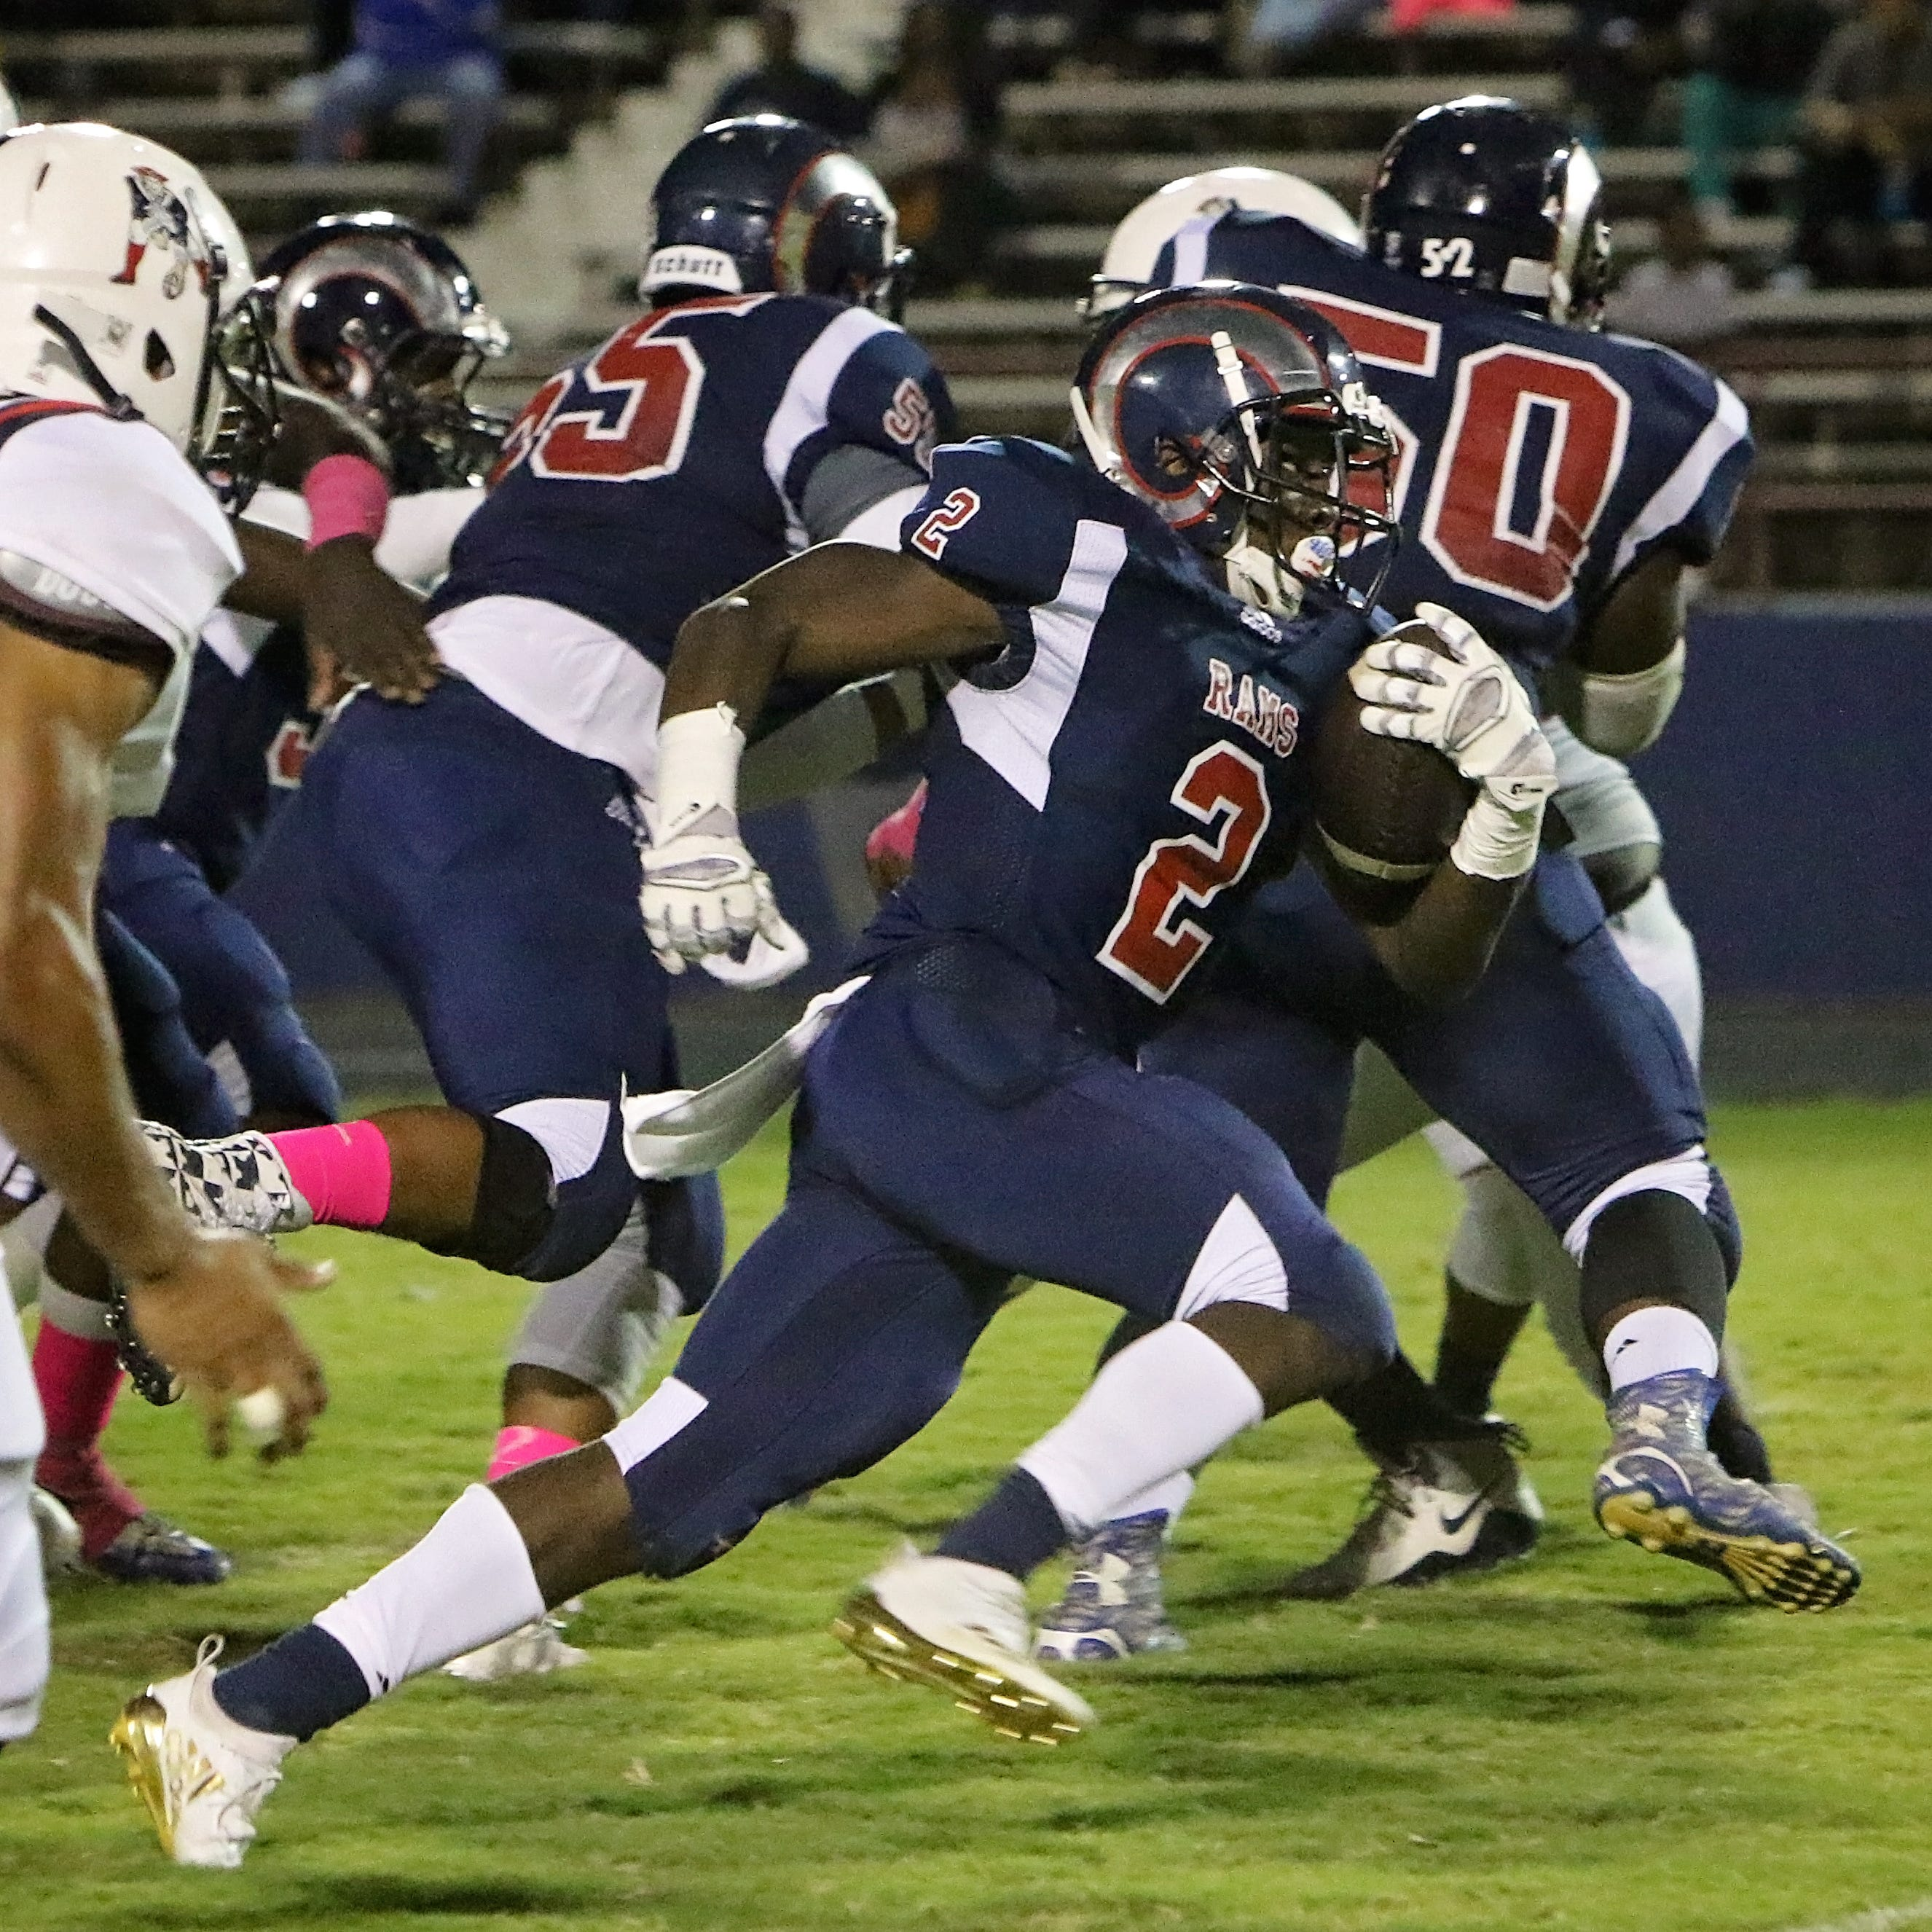 The Franklin Parish Patriots travelled to Bastrop to take on the Rams Friday night, October 19 in Bastrop, La.